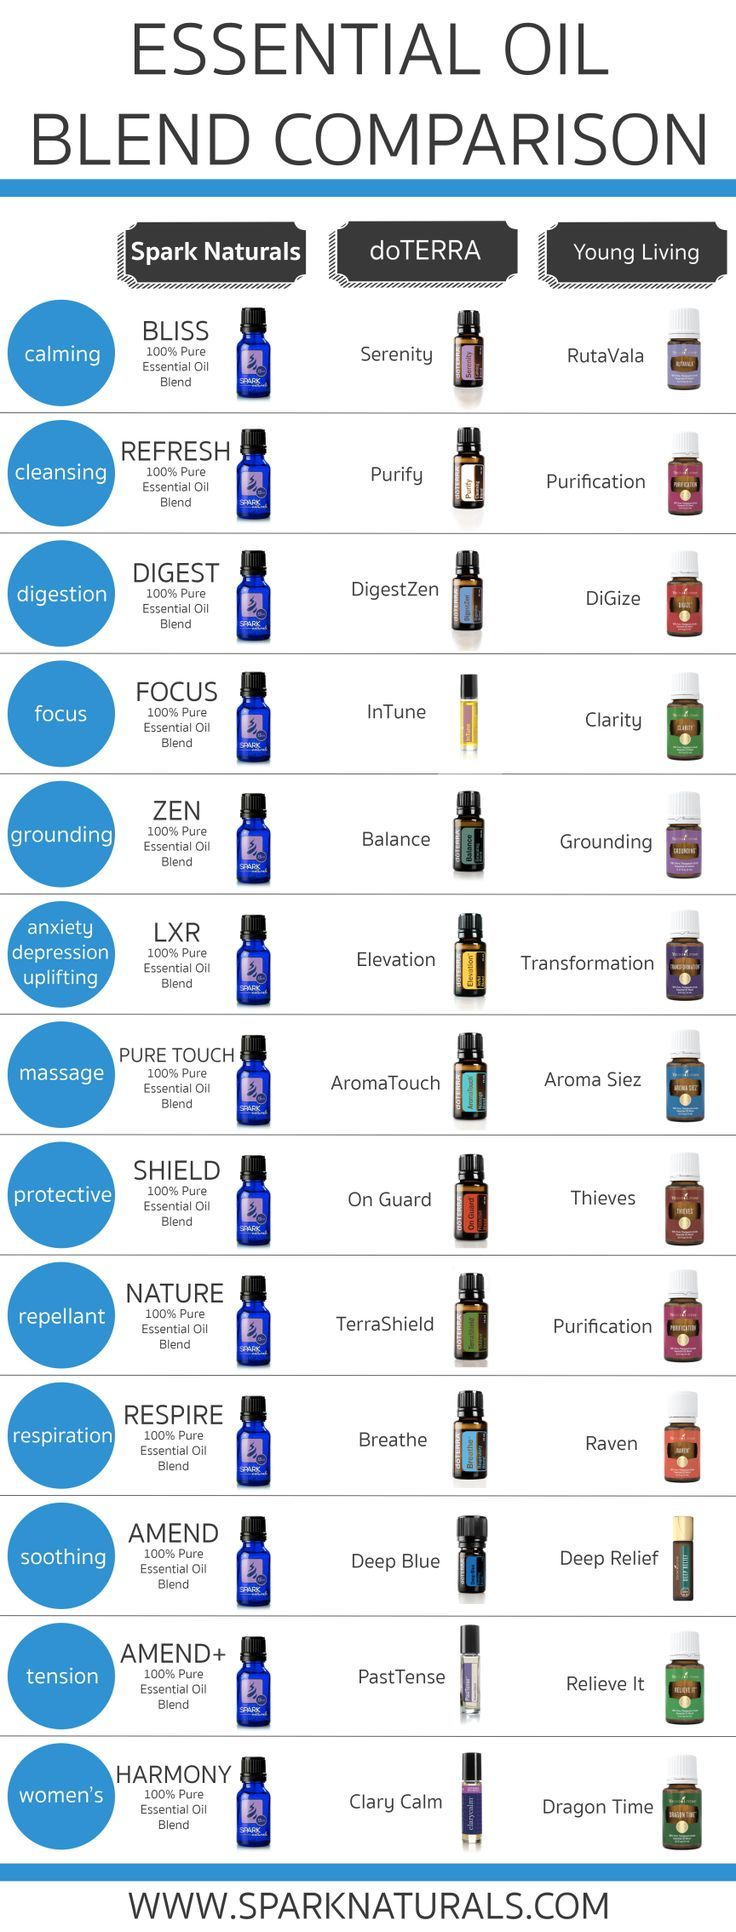 Do you use DoTerra or Young Living Essential Oil Blends? We offer the same variety of Essential Oil Blends, certified 100% Pure Pharma-Grade, for a fraction of the cost to you because we are…